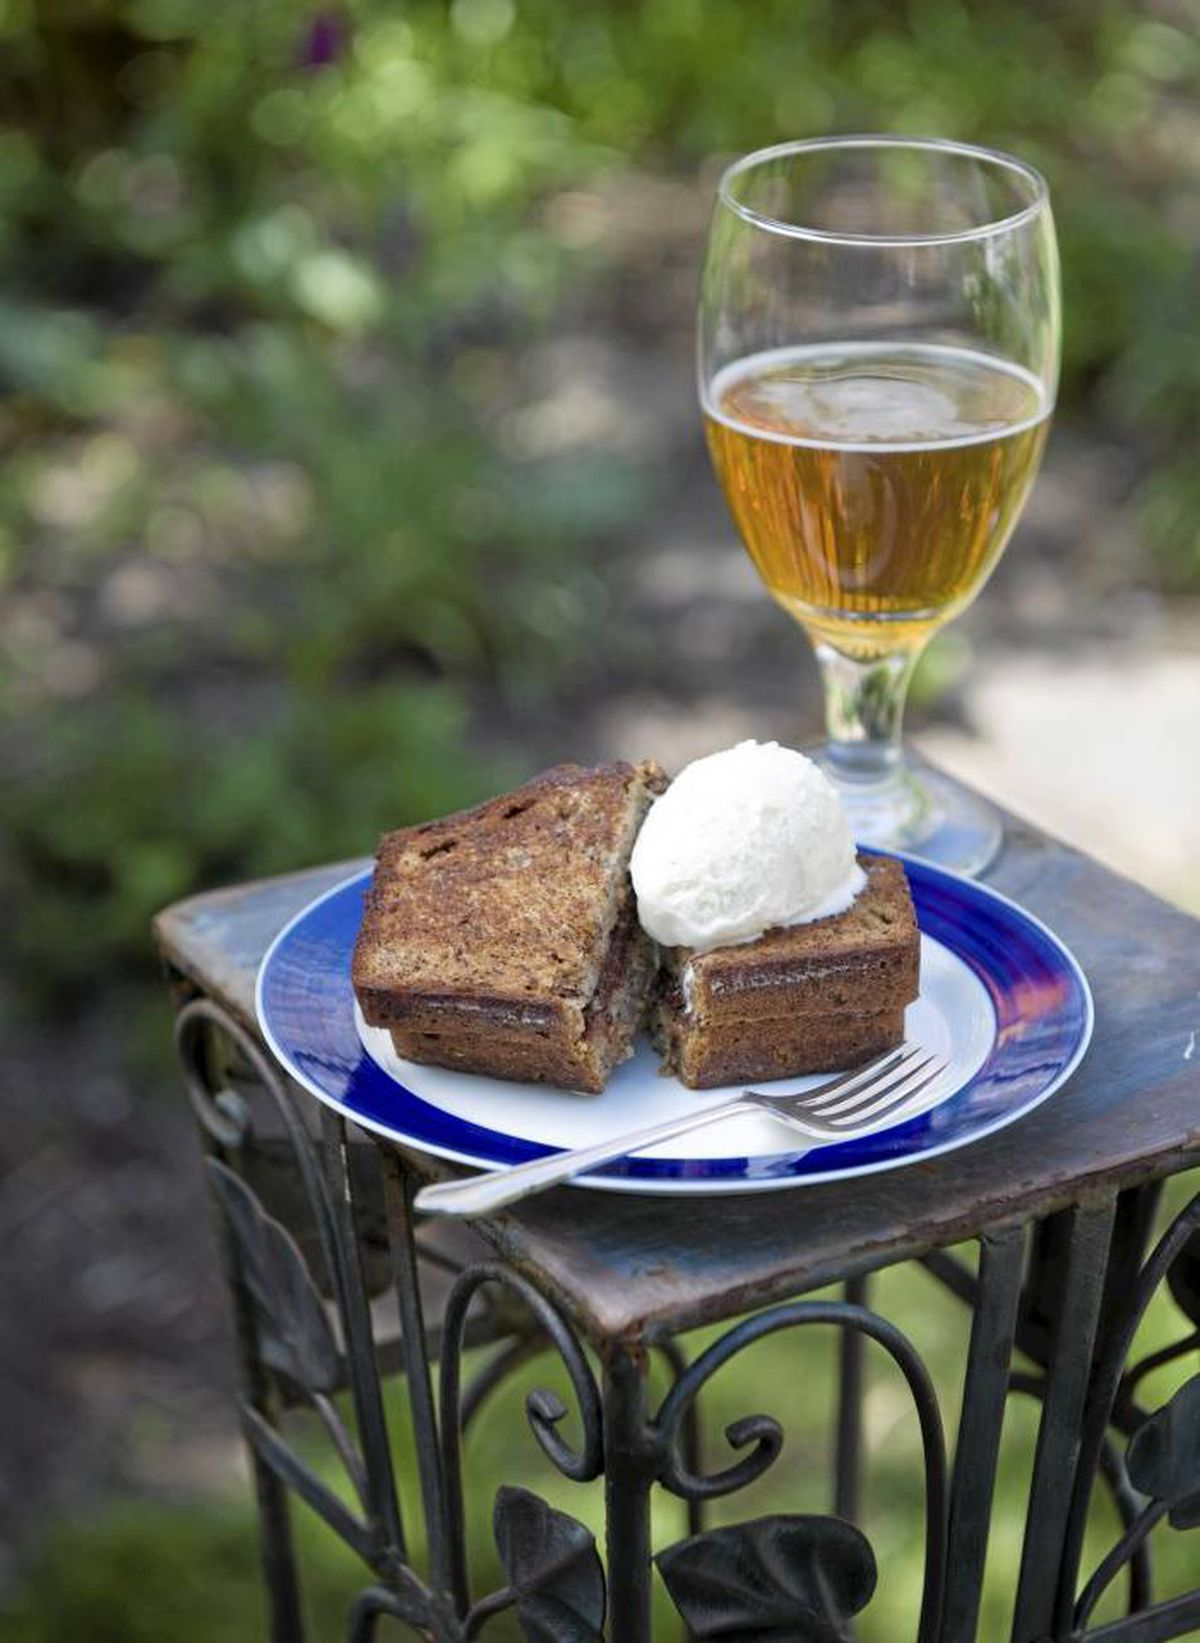 Complement the flavour of a grilled Nutella and banana bread sandwich with a slightly bitter beer or a rich stout.